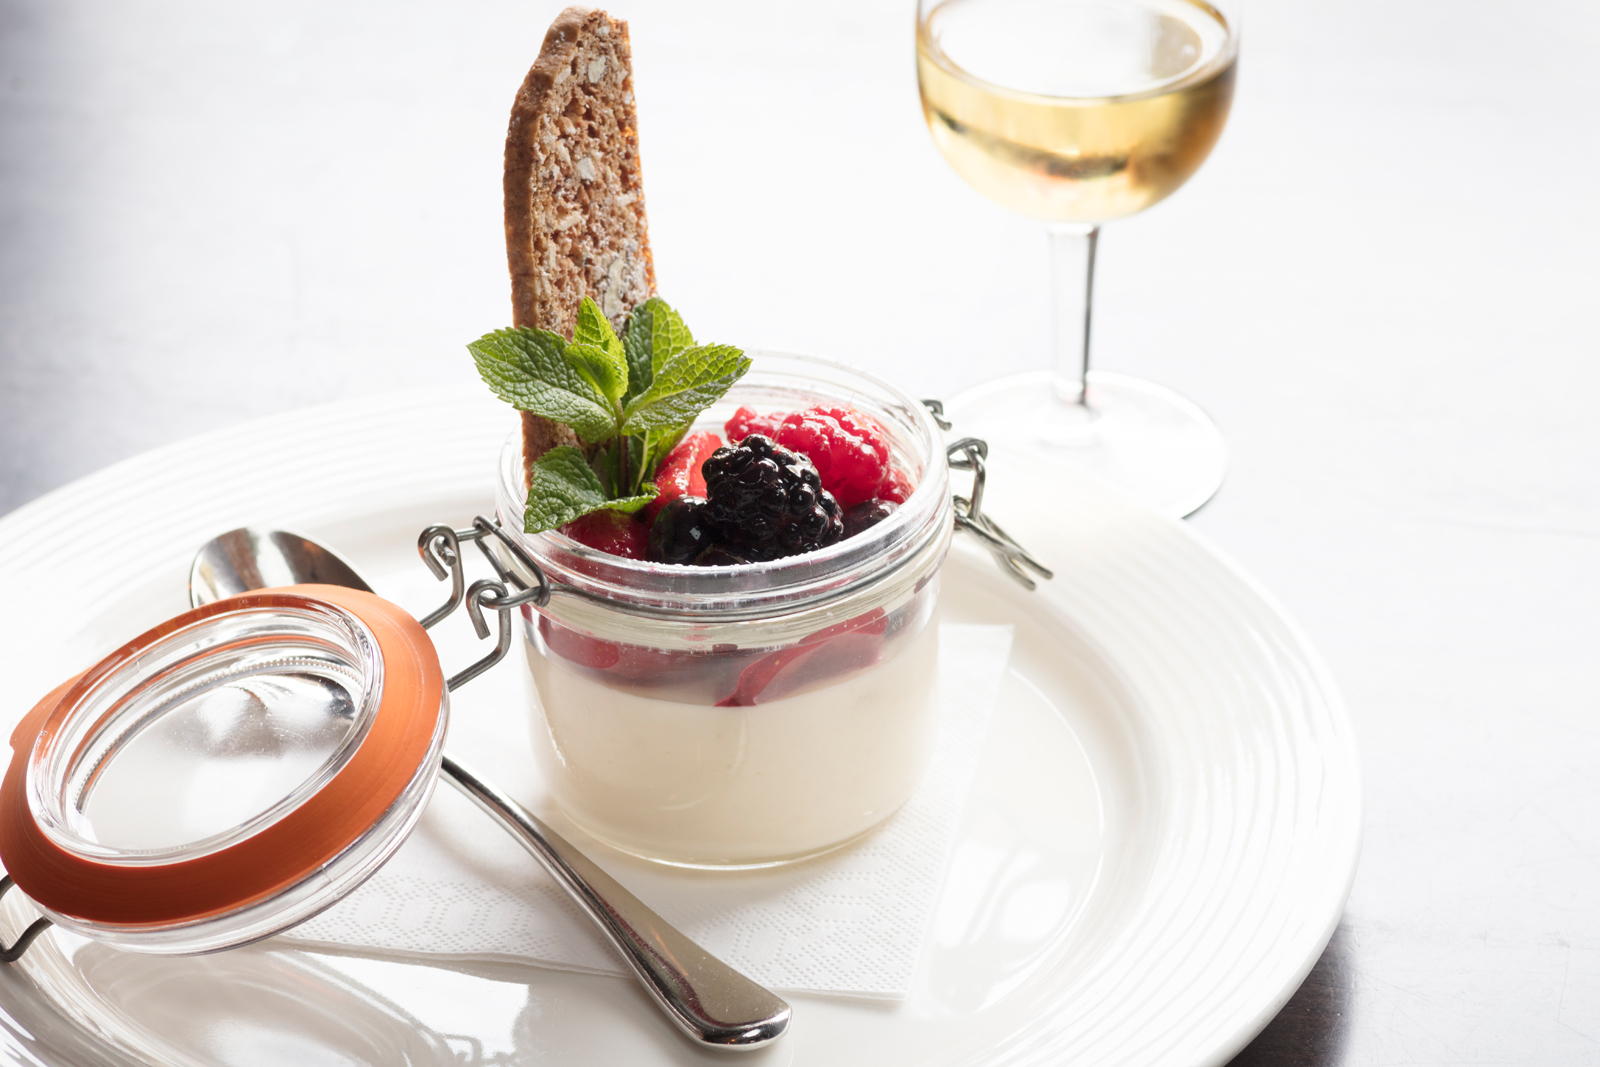 Vanilla Panna Cotta with Blackberries & Biscotti